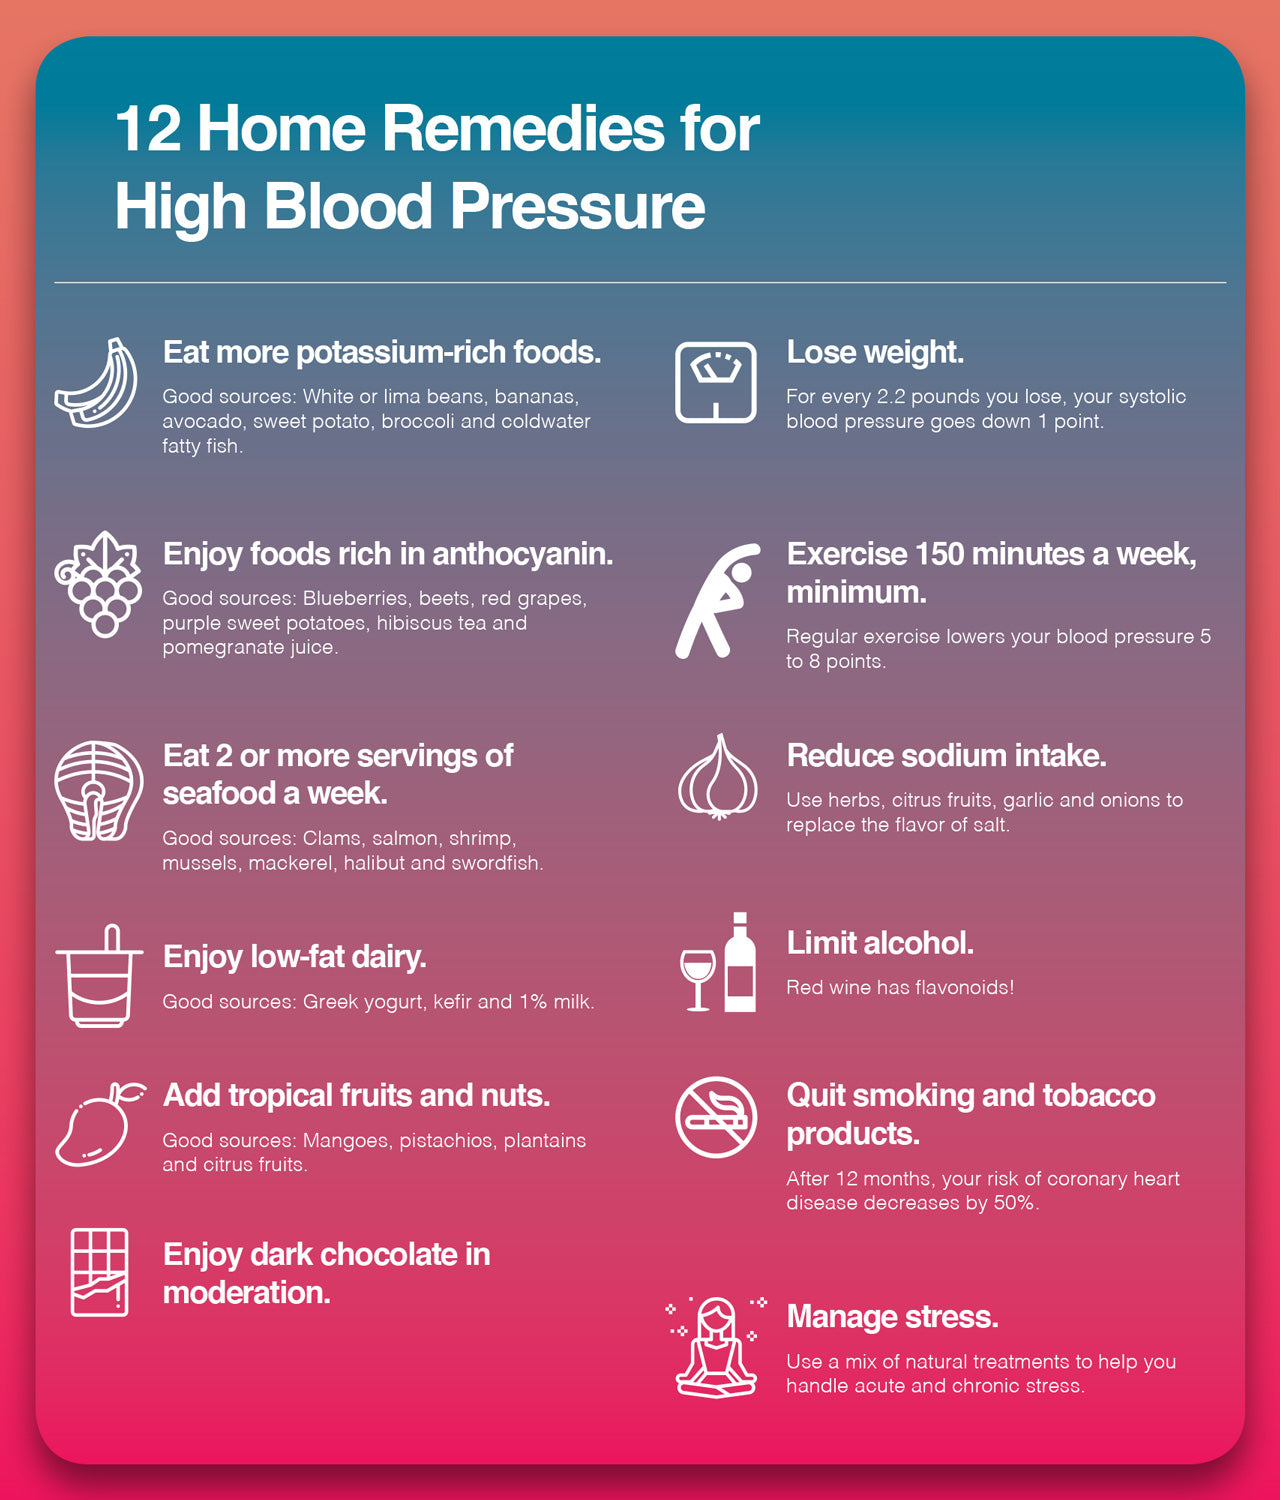 Here are 12 home remedies for high blood pressure.